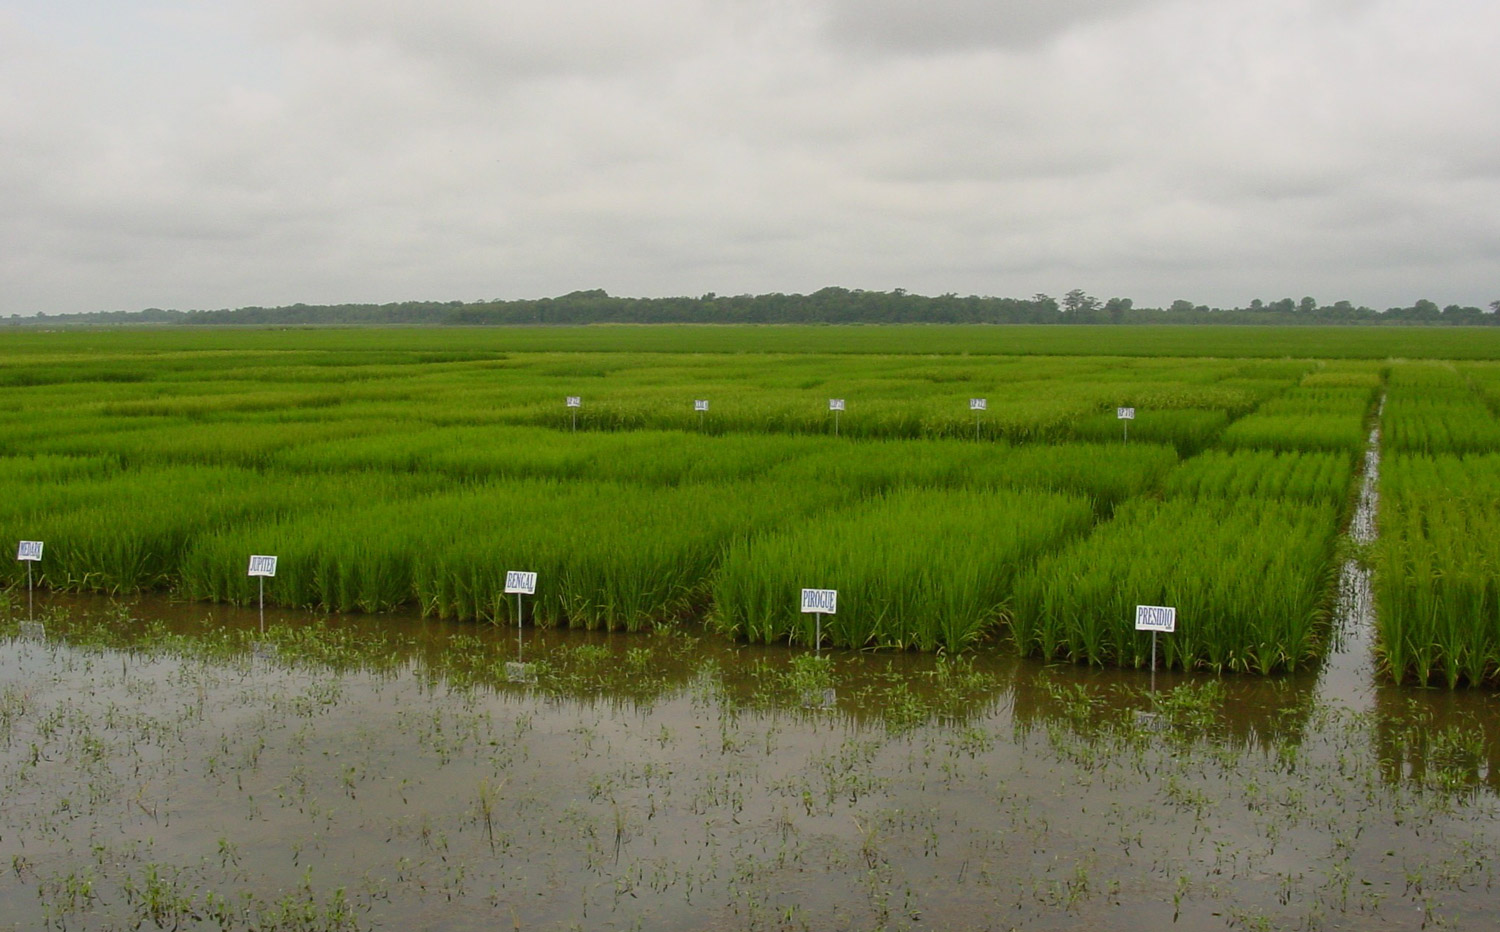 The Importance of Research to the U.S. Rice Industry